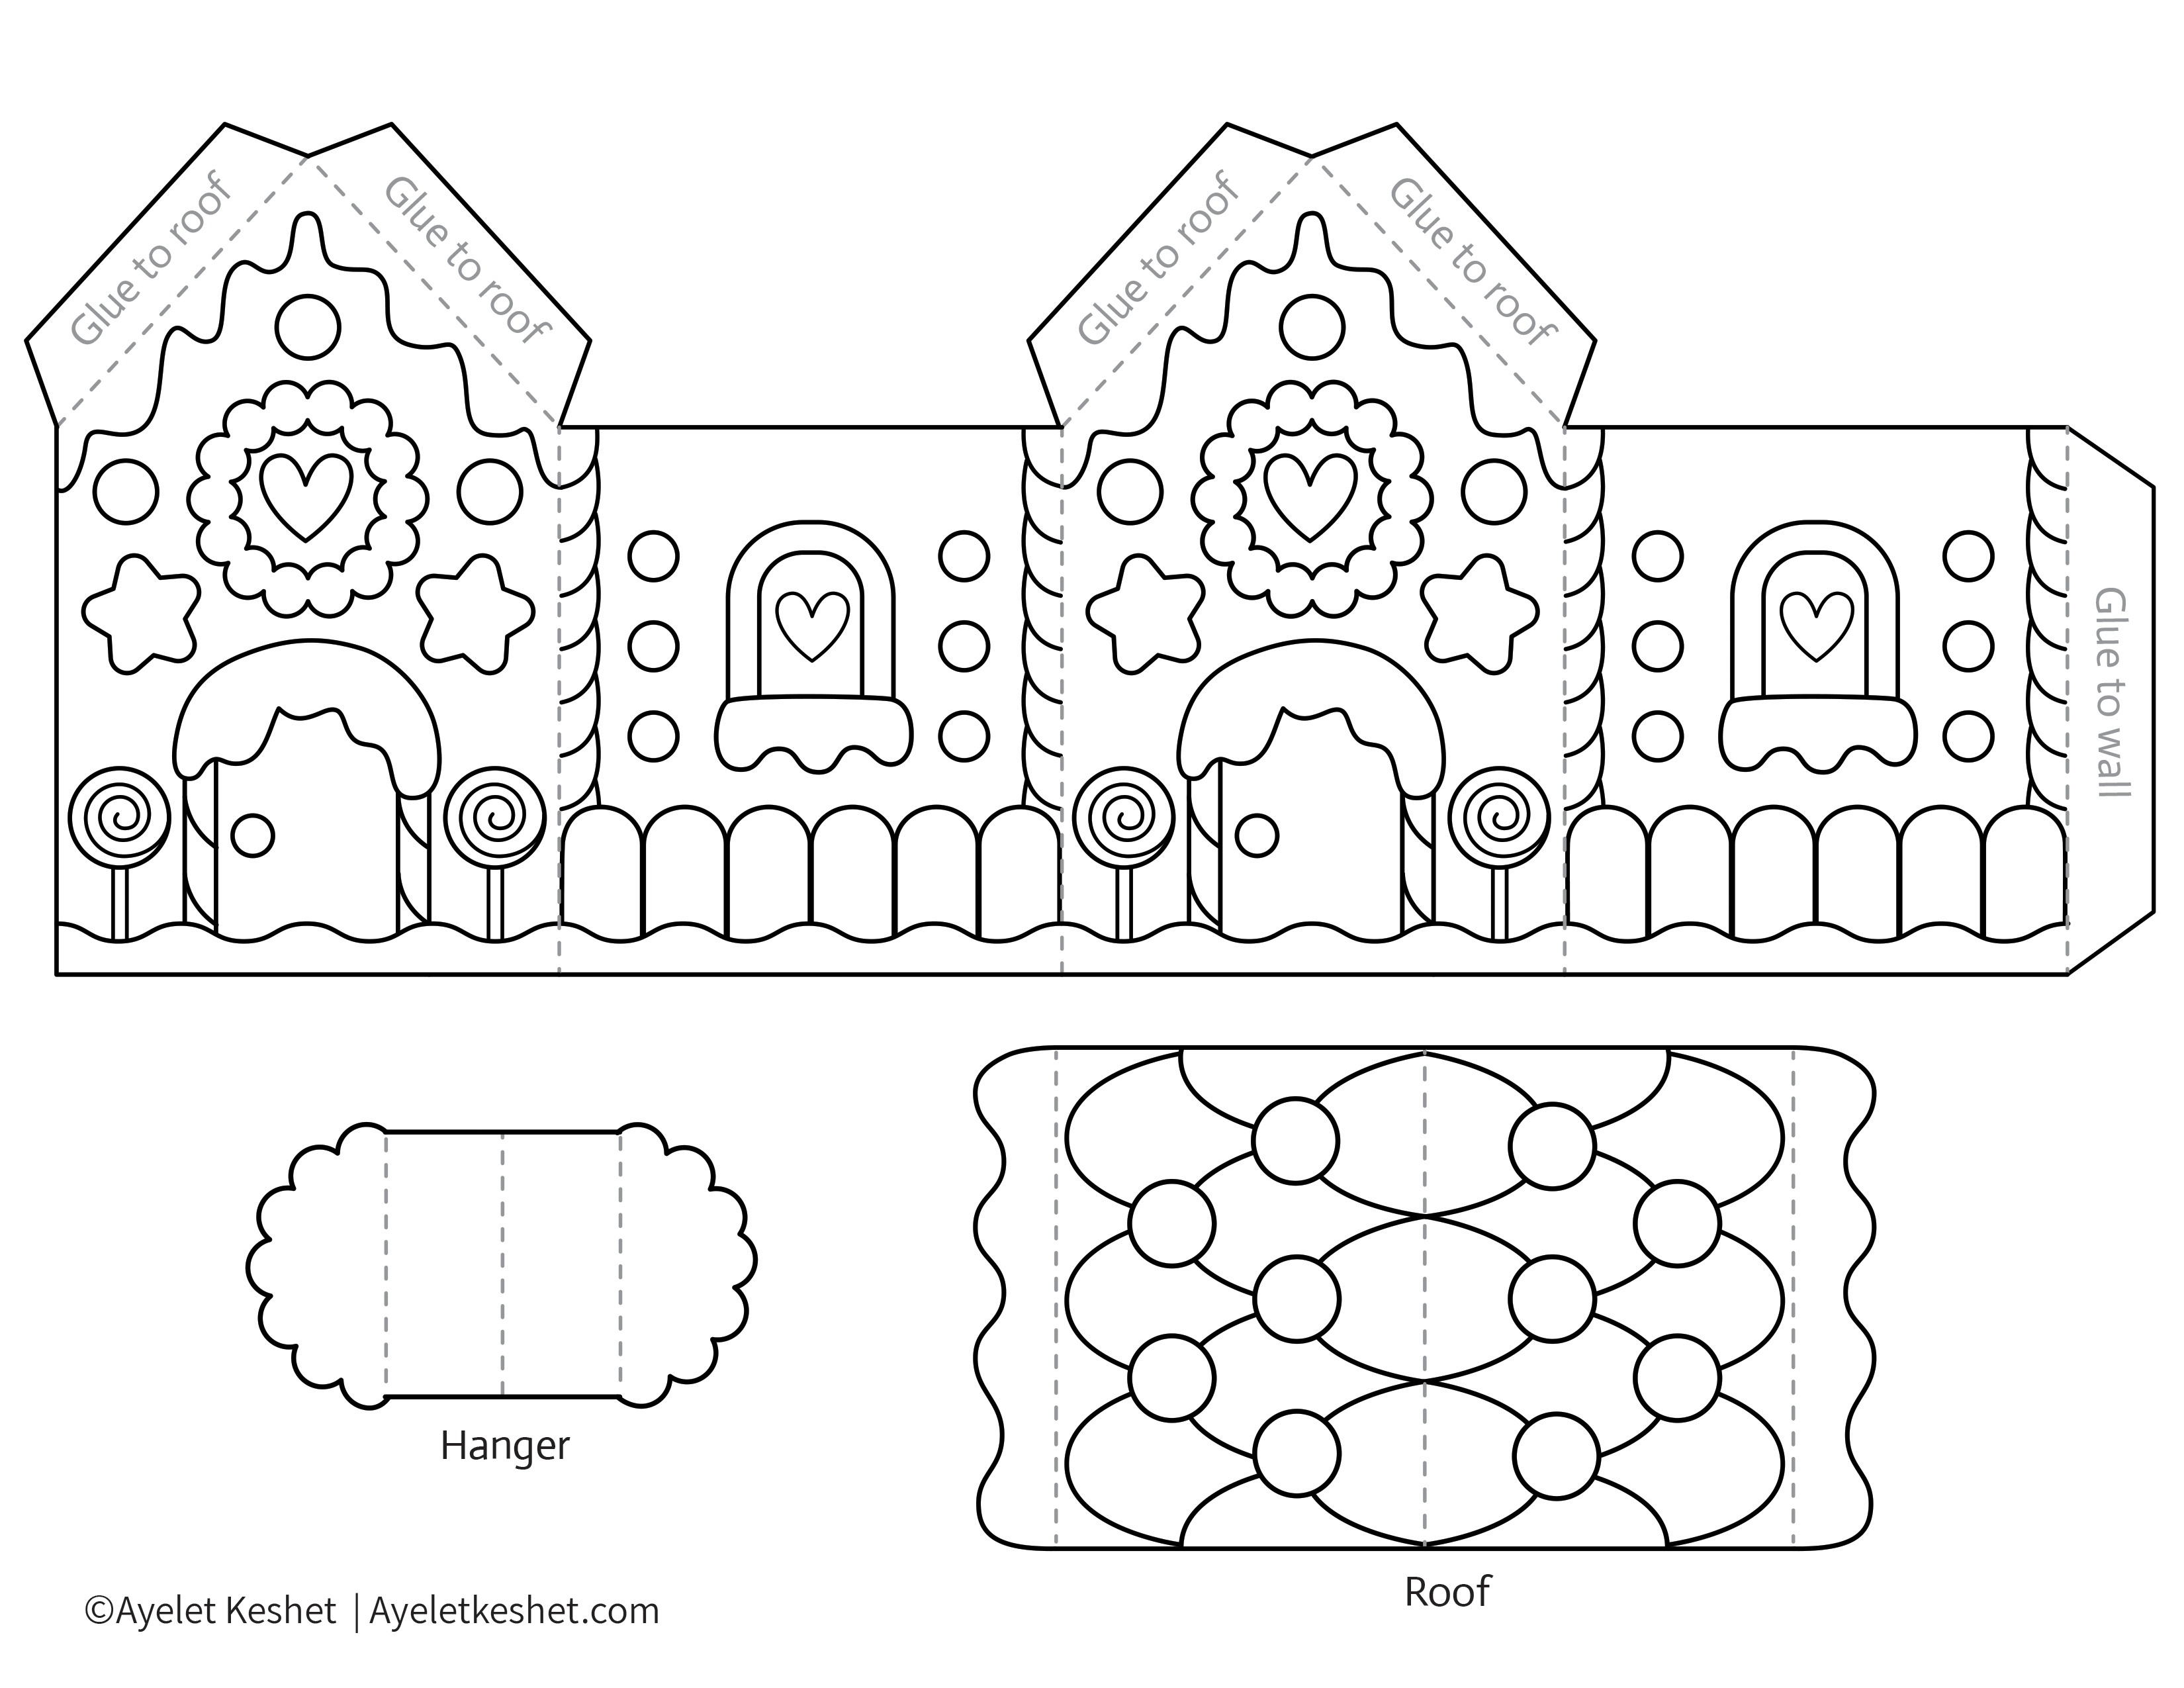 Printable Gingerbread House Template To Color - Ayelet Keshet - Free Gingerbread House Printables